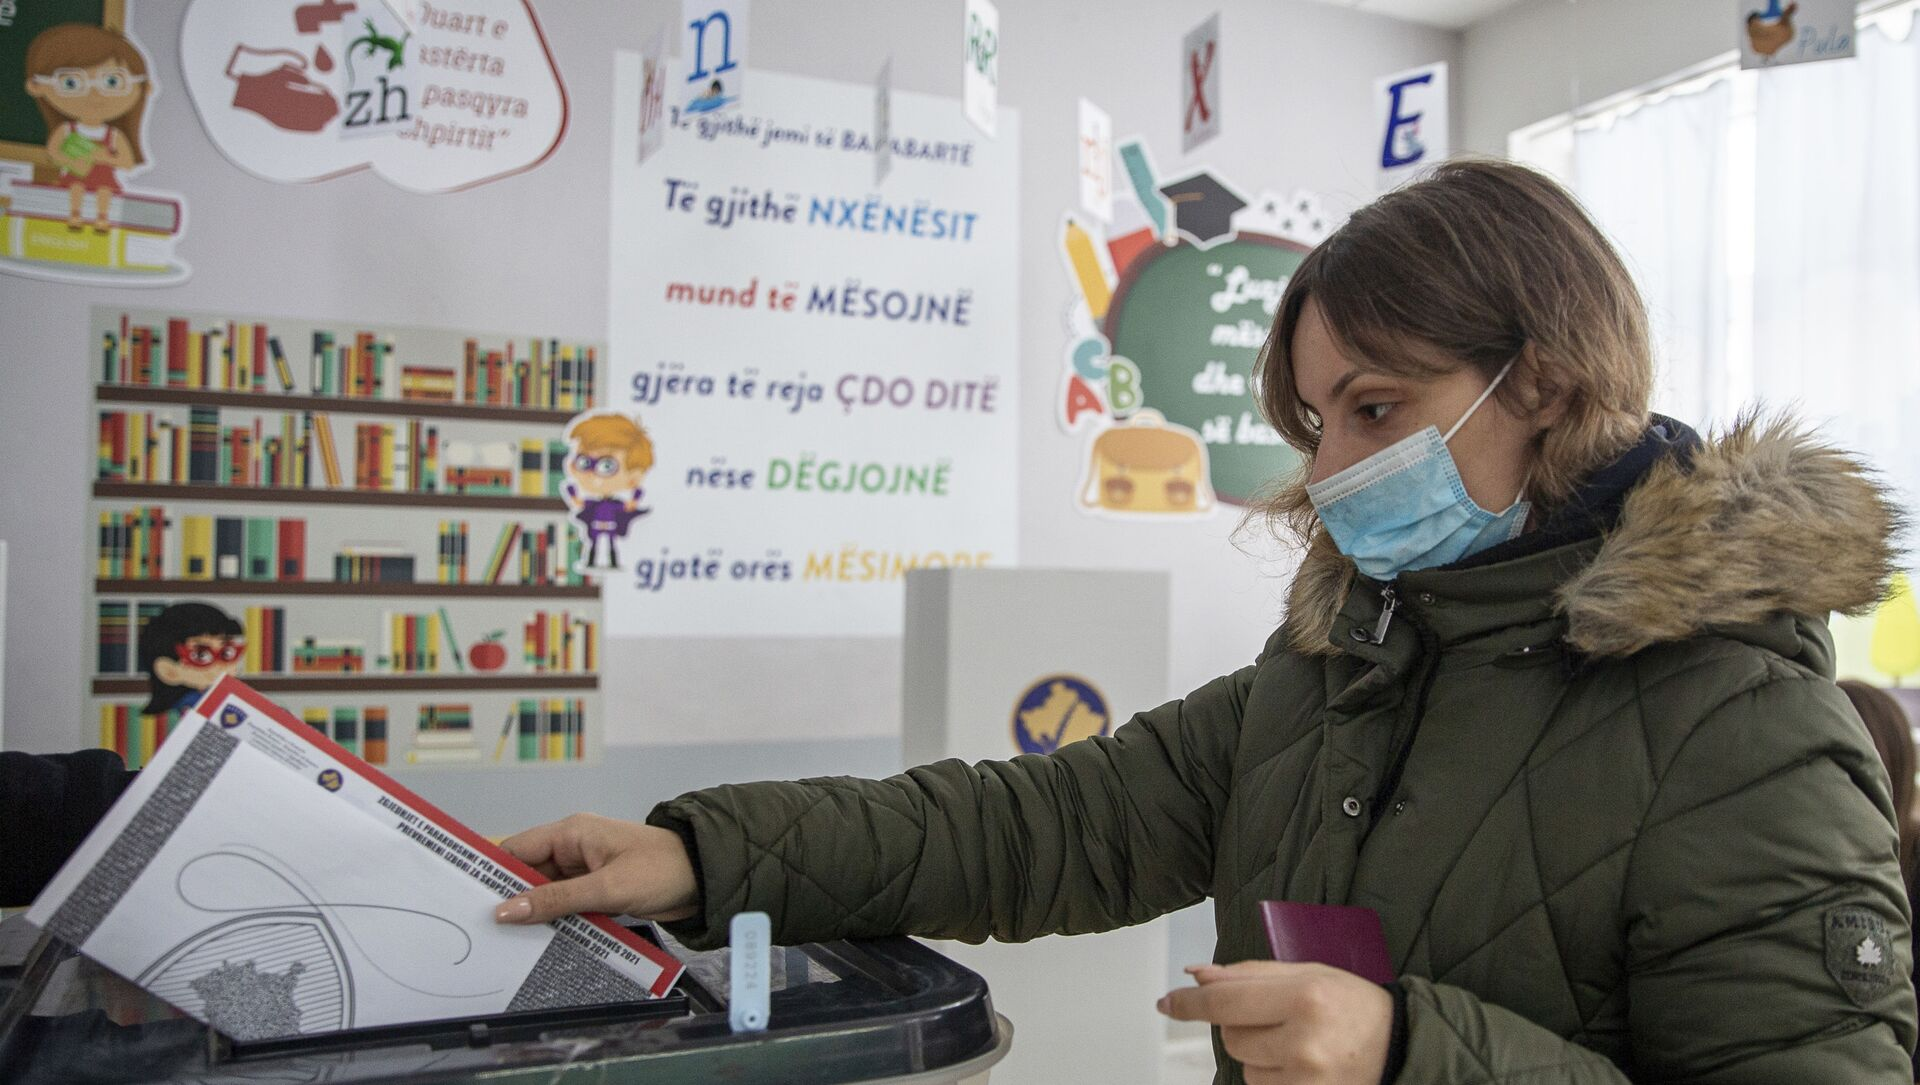 A woman wearing a protective mask casts her vote in parliamentary elections in capital Pristina, Kosovo, Sunday, Feb. 14, 2021. Kosovo is holding an early parliamentary election to form a new government amid the coronavirus pandemic, an economic downturn and stalled negotiations with wartime foe Serbia.  - Sputnik Italia, 1920, 14.02.2021